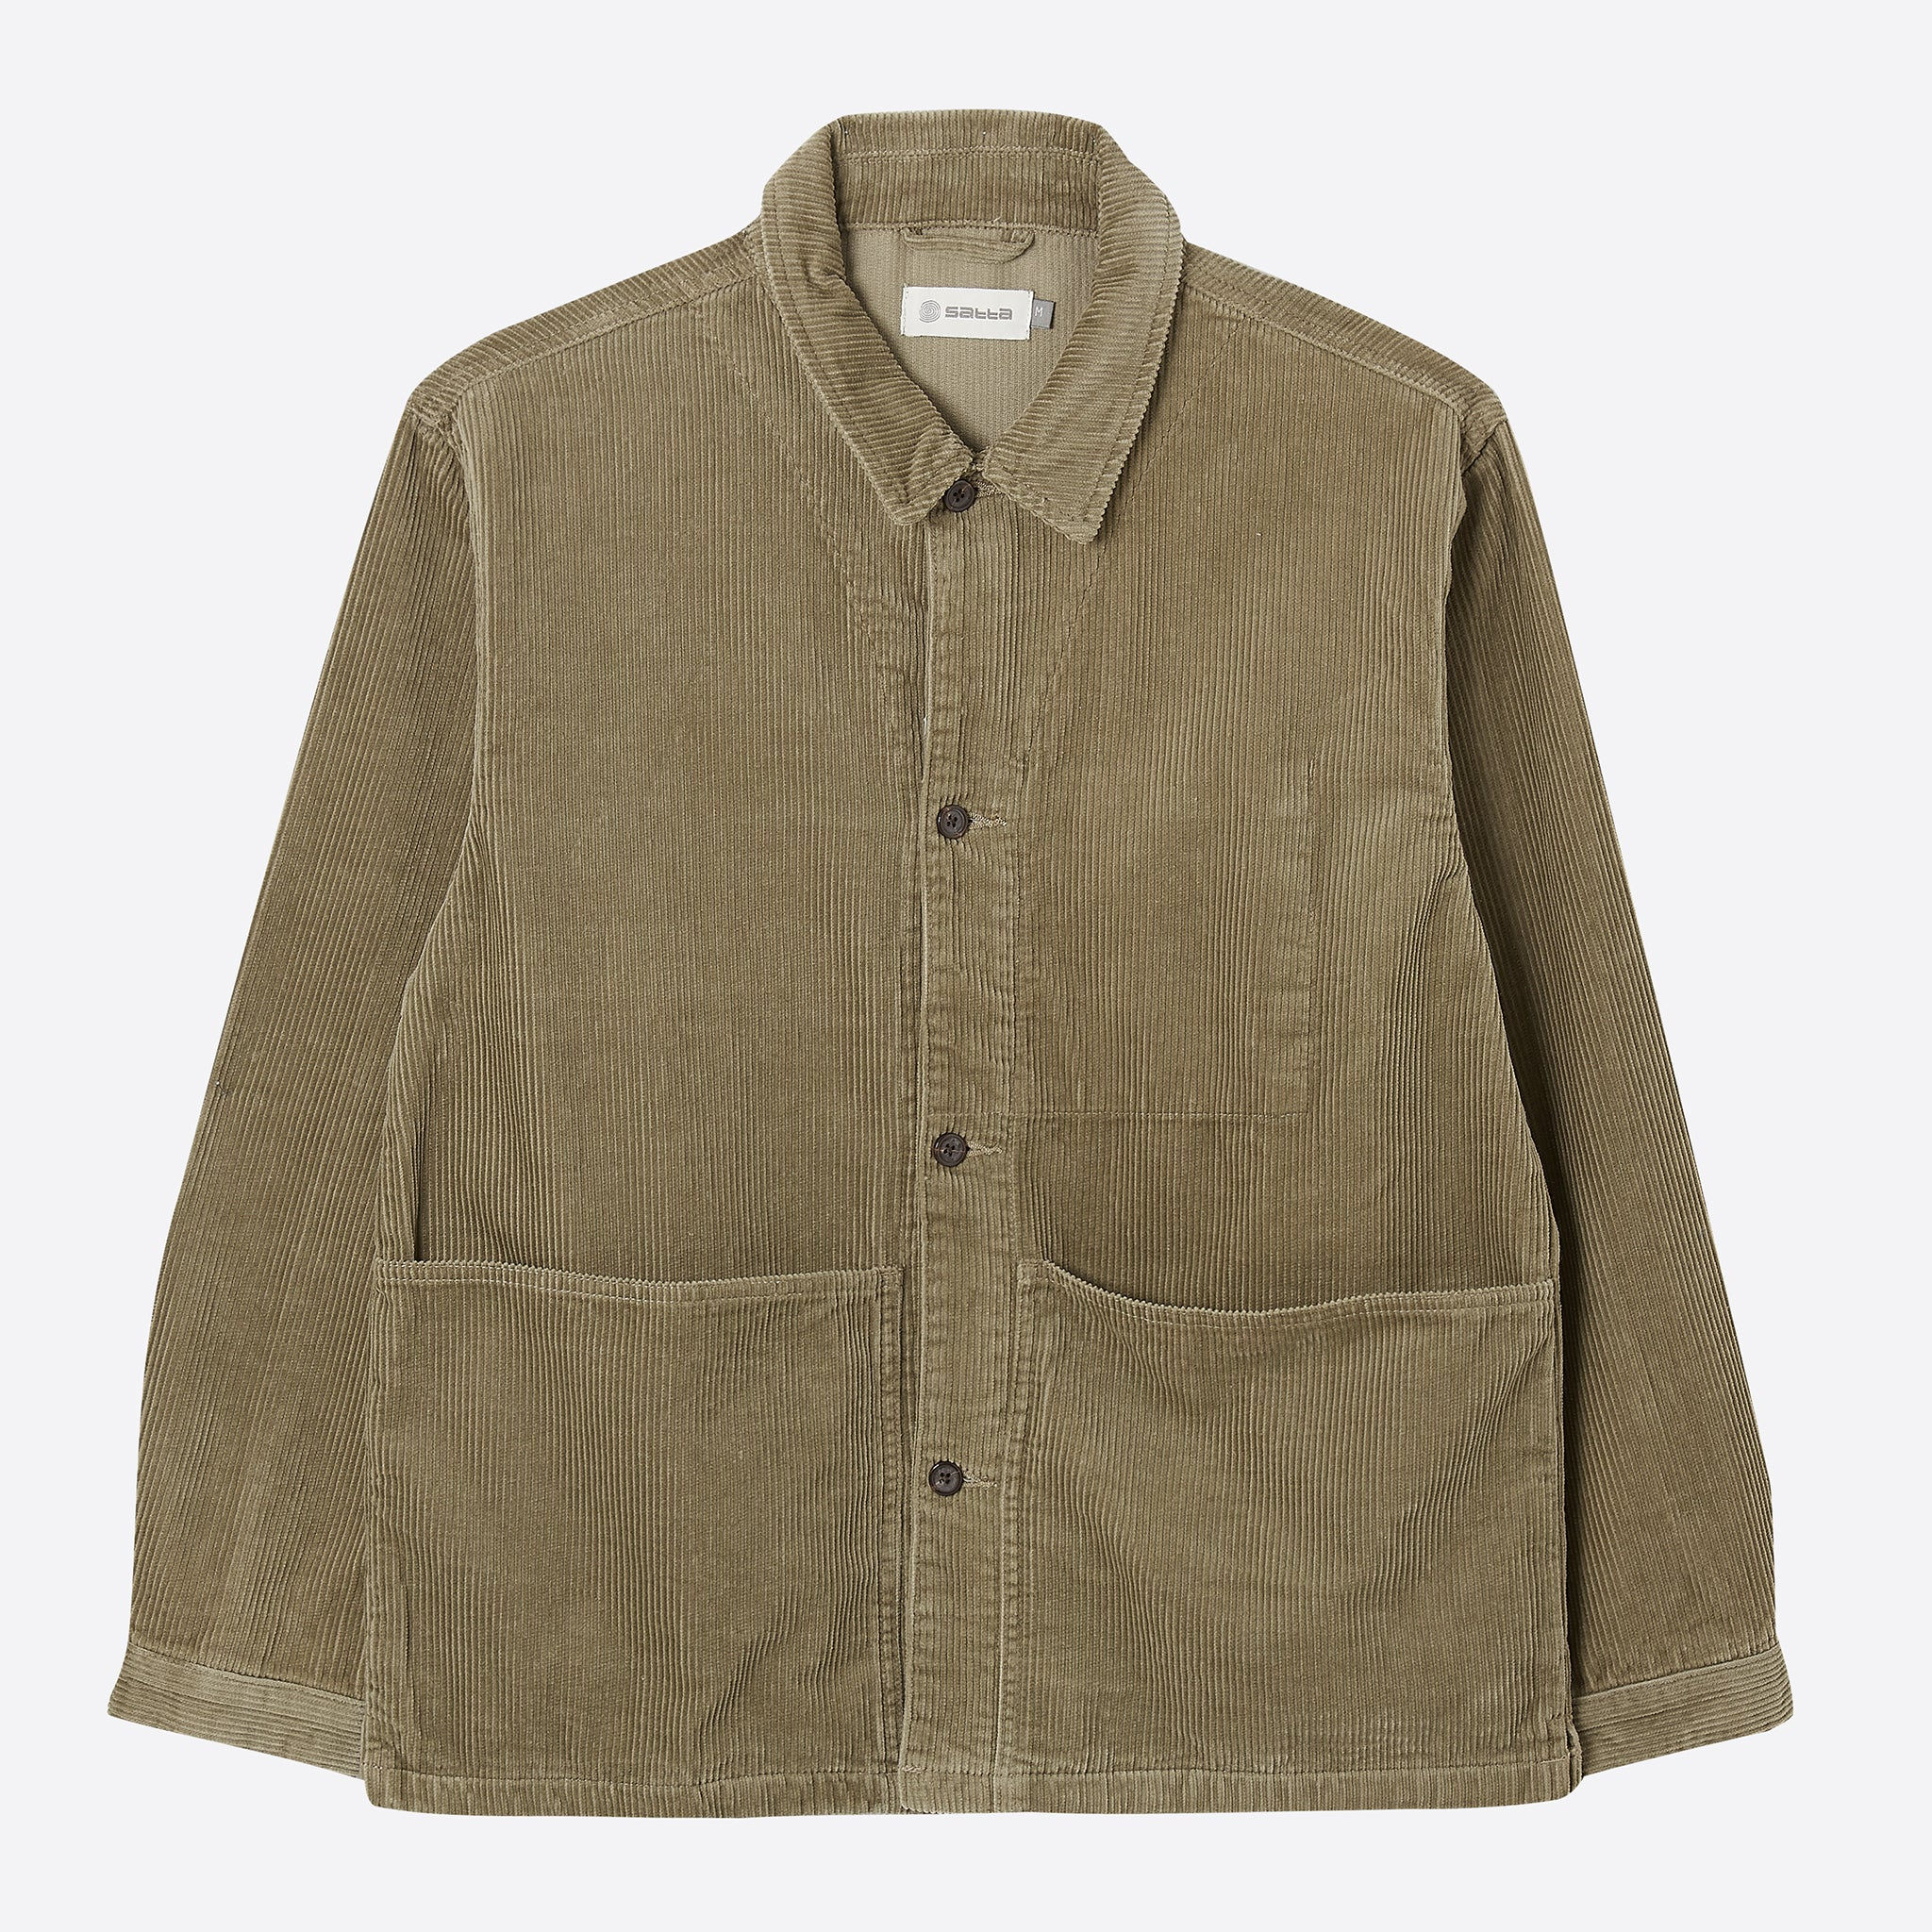 Satta Allotment Cord Jacket in Taupe